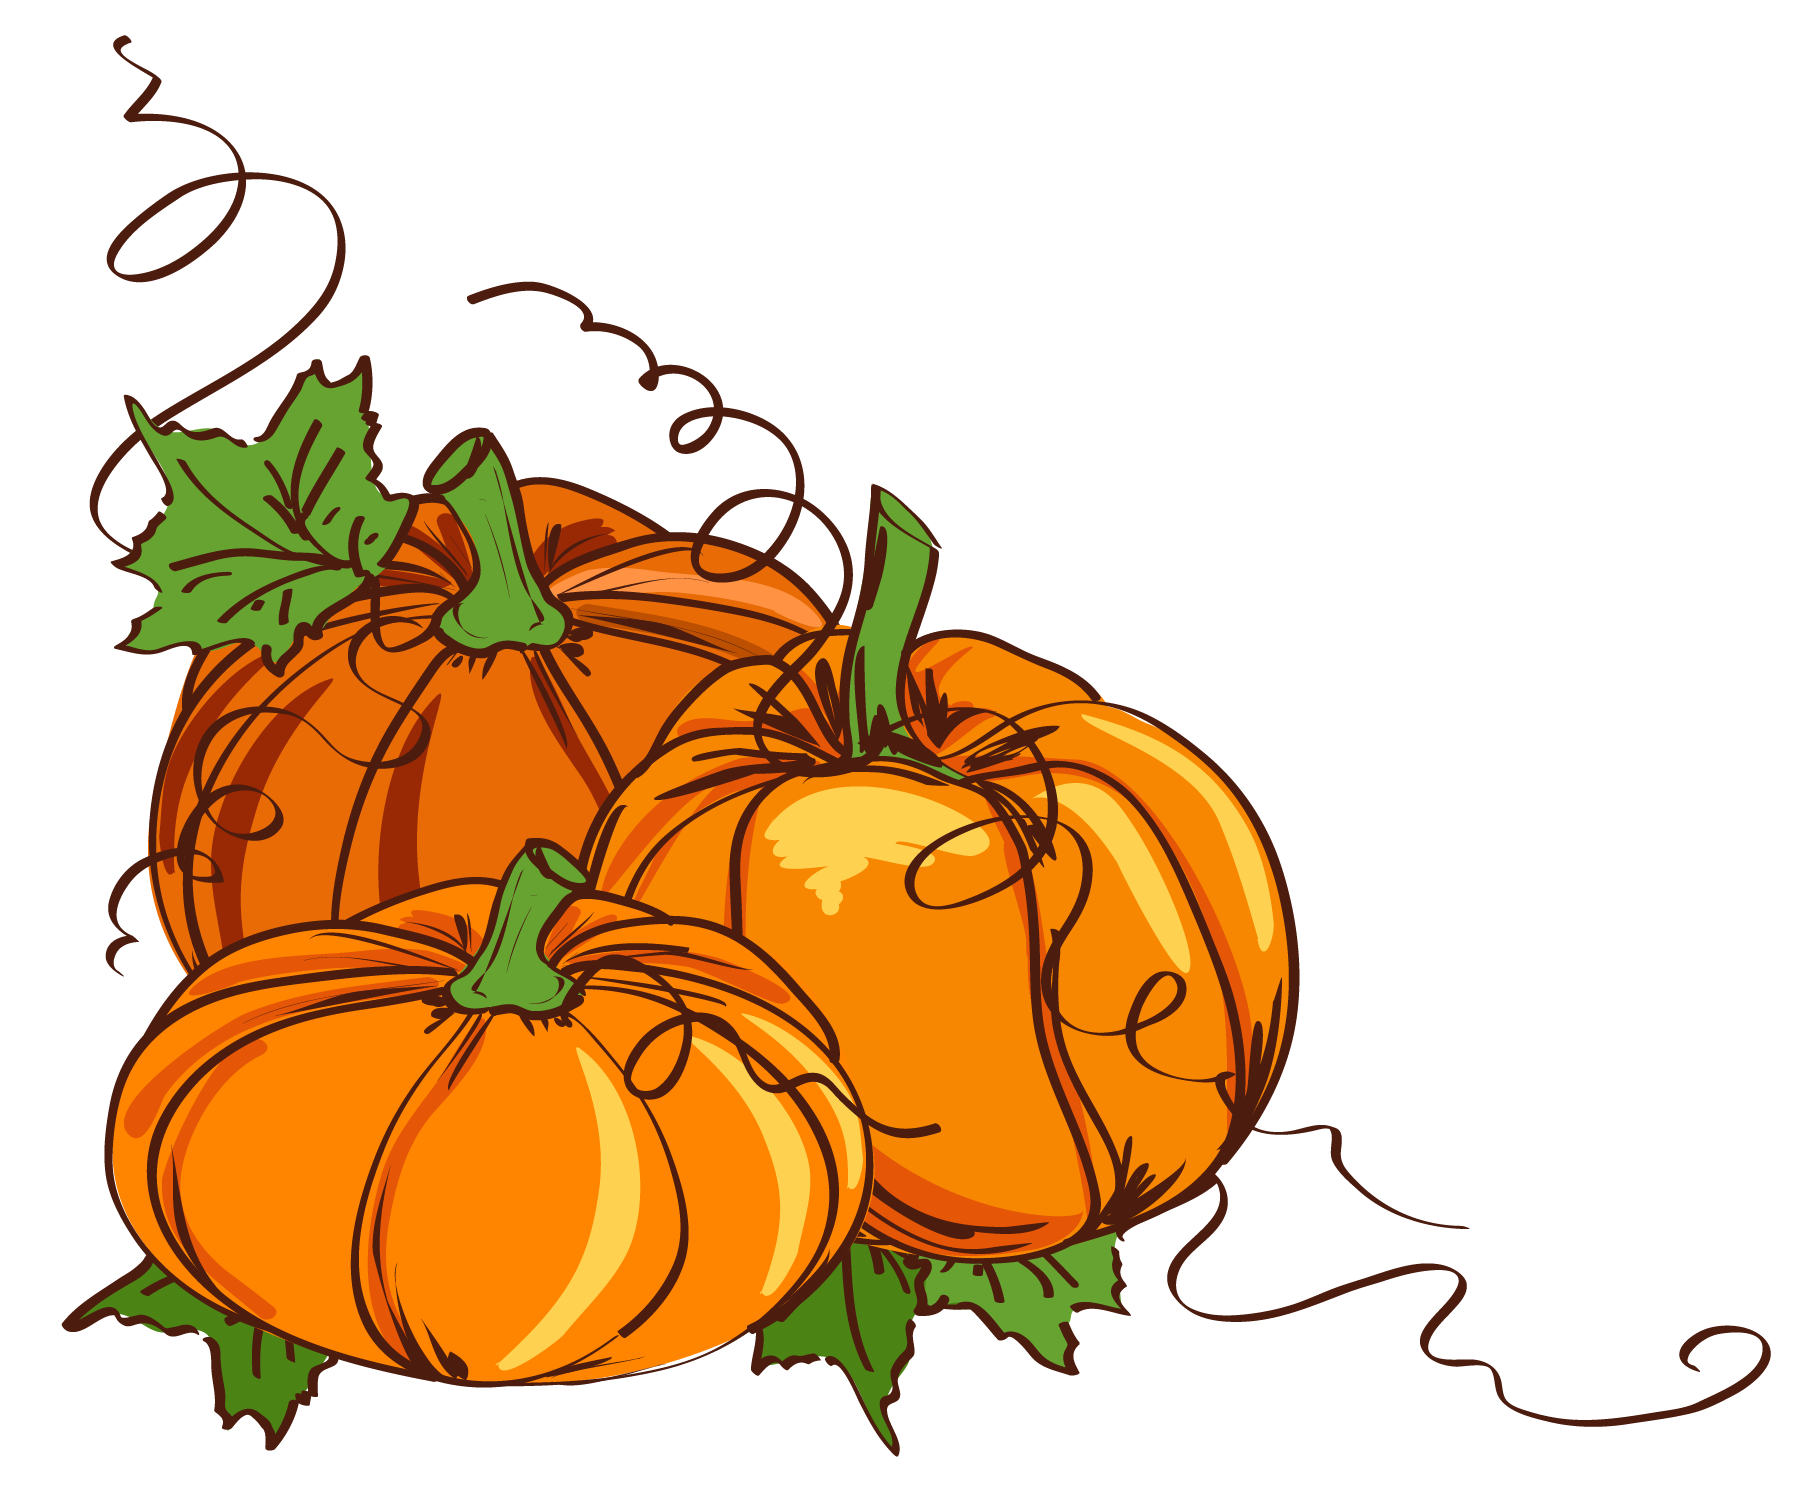 Preschool pumpkin clipart jpg library Thanksgiving Pumpkin Clipart at GetDrawings.com | Free for personal ... jpg library